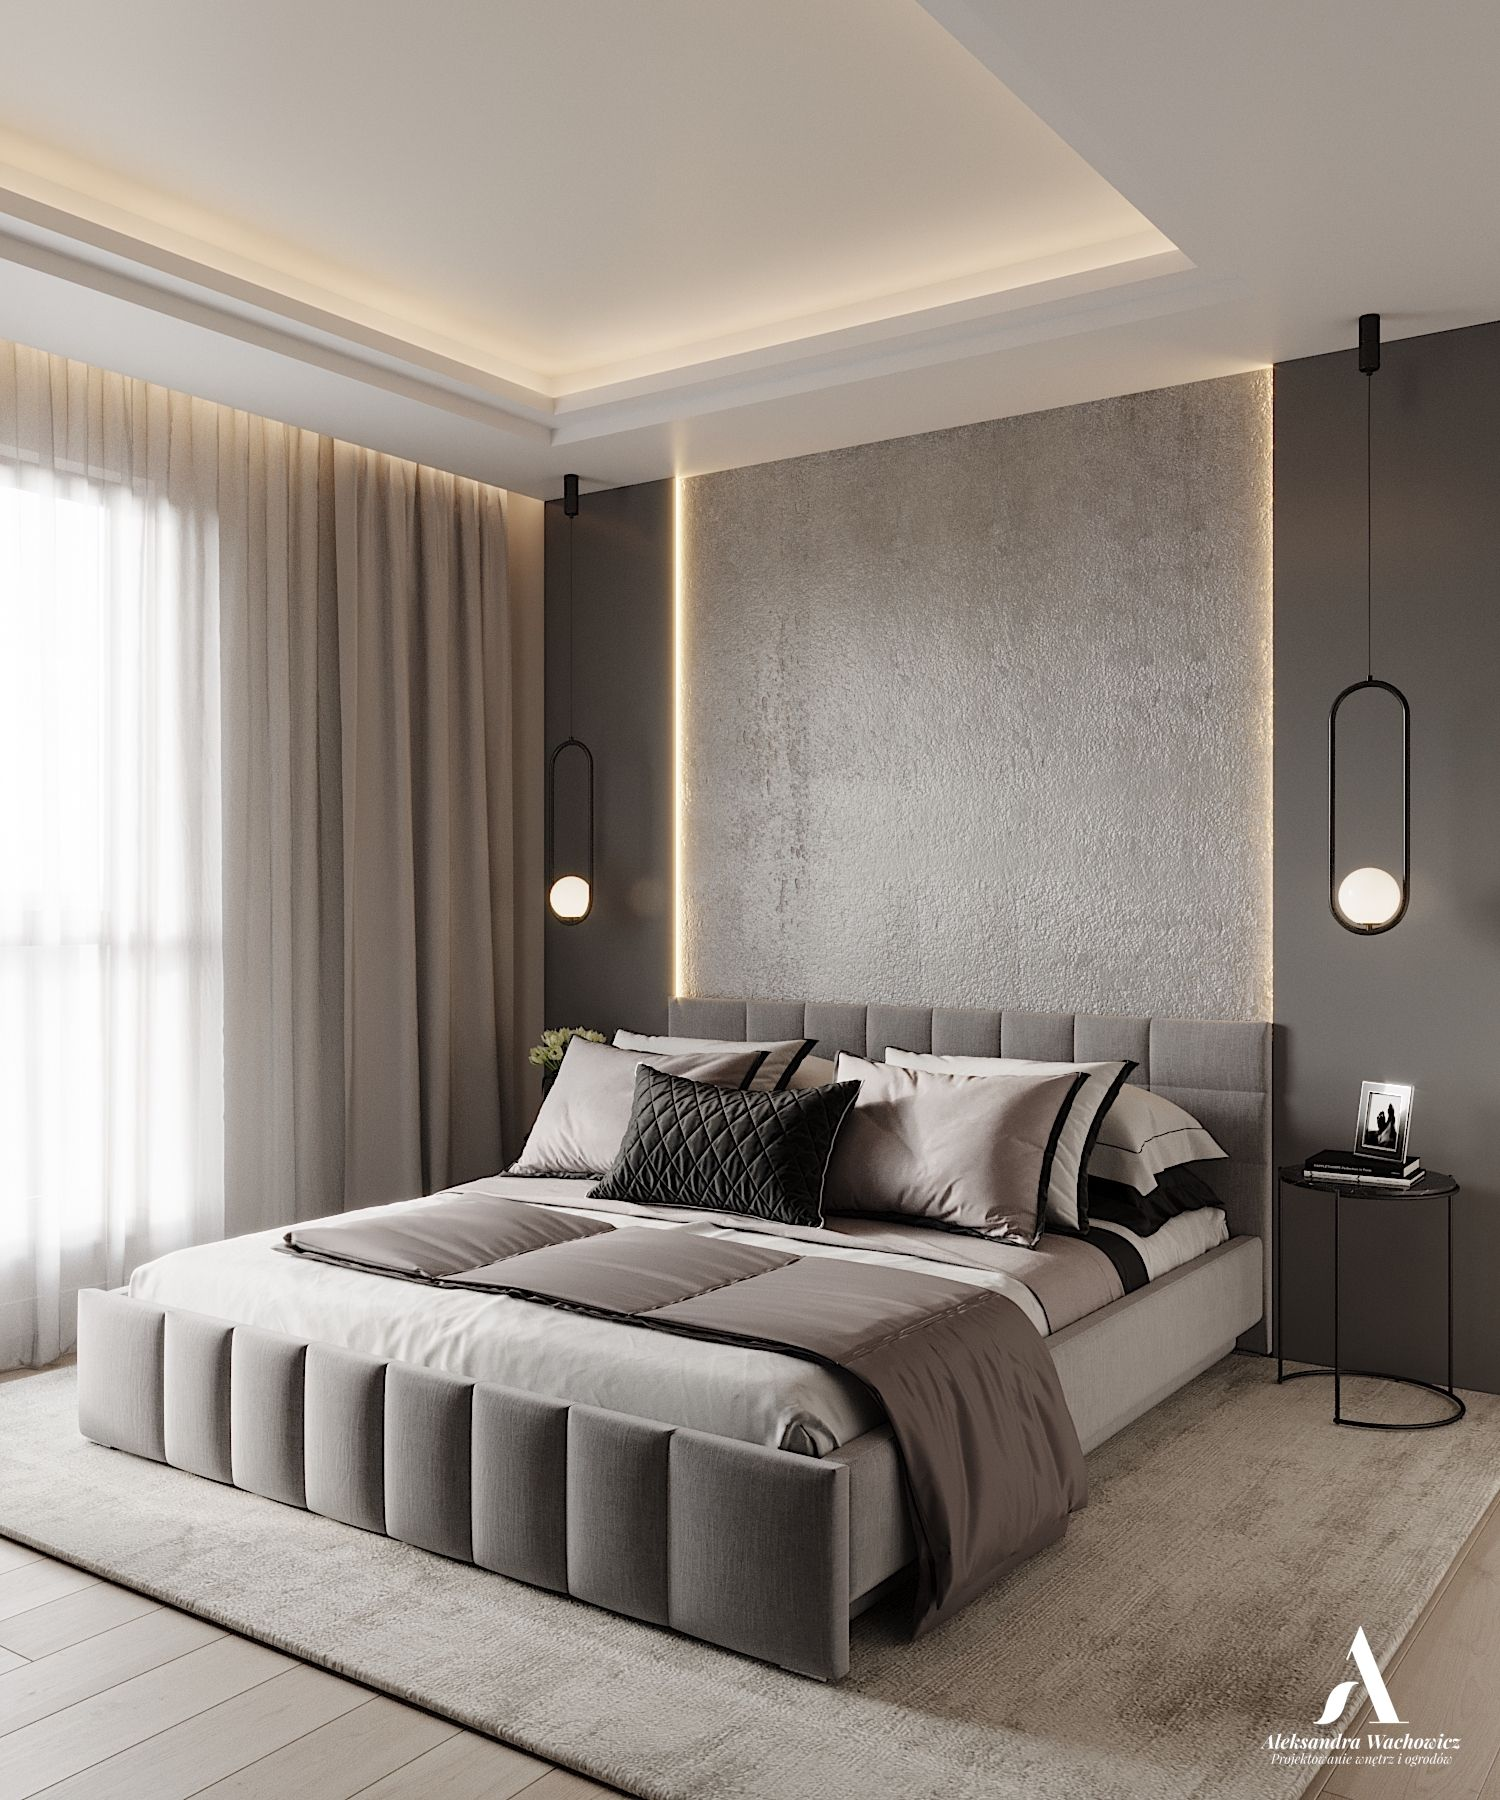 bedroom interior decoration , 3-D bedroom interior design, Master bedroom interior decoration